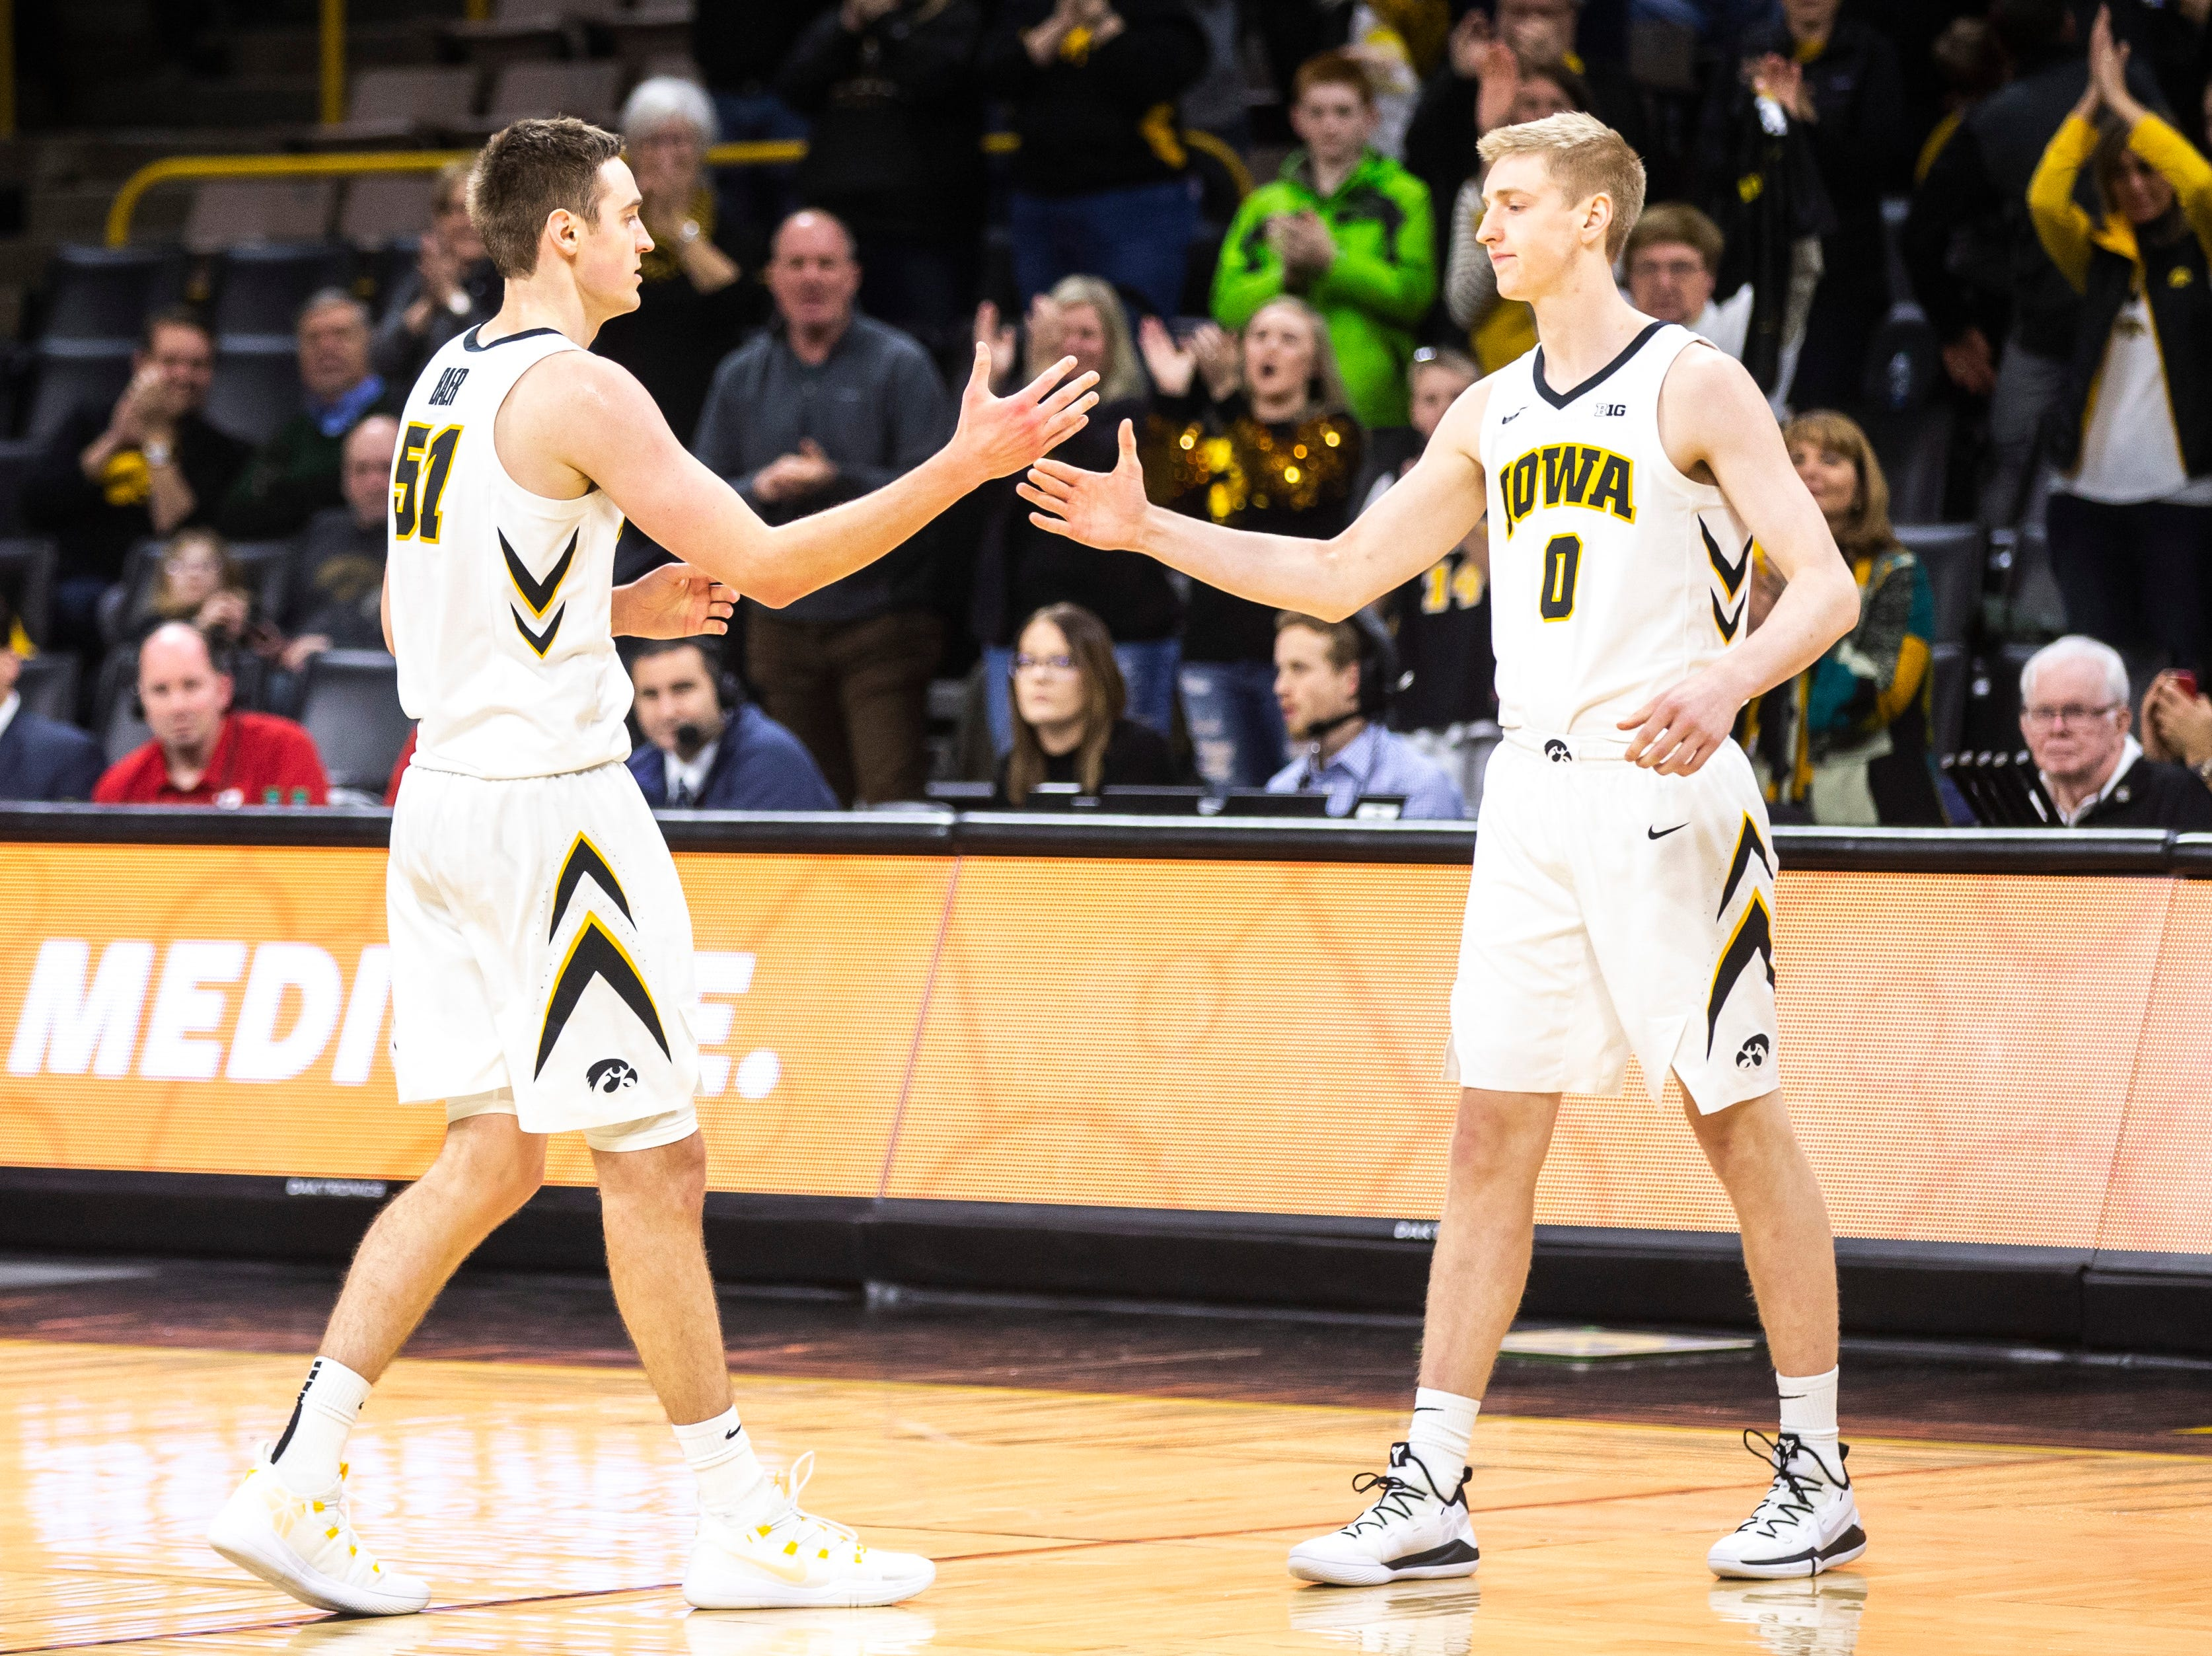 Iowa forward Nicholas Baer (51) goes to embraces his brother, Iowa forward Michael Baer (0) during a NCAA Big Ten Conference men's basketball game on Saturday, March 2, 2019, at Carver-Hawkeye Arena in Iowa City, Iowa.